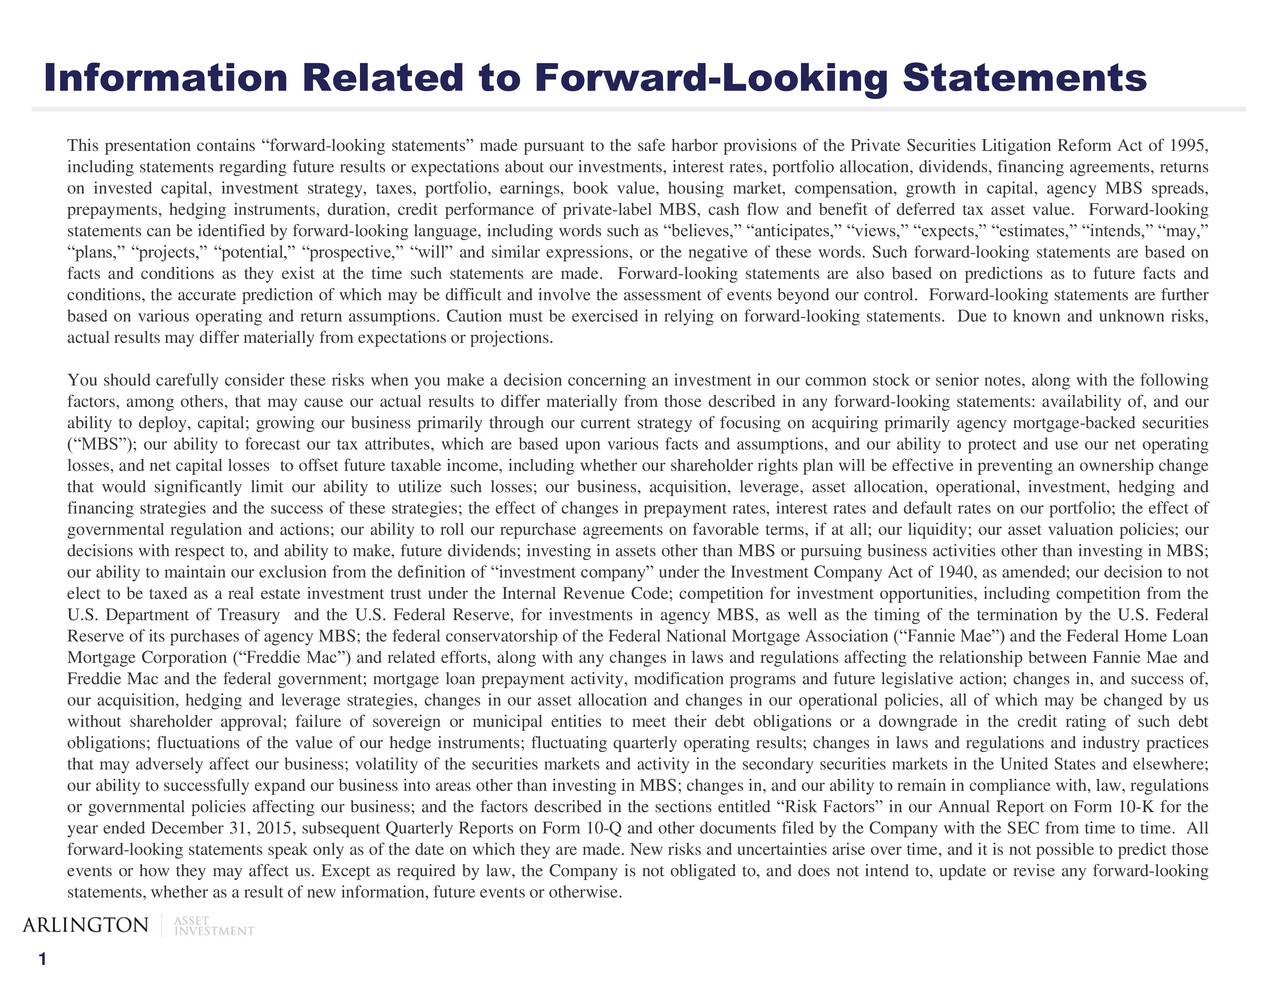 This presentation contains forward-looking statements made pursuant to the safe harbor provisions of the Private Securities Litigation Reform Act of 1995, including statements regarding future results or expectations about our investments, interest rates, portfolio allocation, dividends, financing agreements, returns on invested capital, investment strategy, taxes, portfolio, earnings, book value, housing market, compensation, growth in capital, agency MBS spreads, prepayments, hedging instruments, duration, credit performance of private-label MBS, cash flow and benefit of deferred tax asset value. Forward-looking statements can be identified by forward-looking language, including words such as believes, anticipates, views, expects, estimates, intends, may, plans, projects, potential, prospective, will and similar expressions, or the negative of these words. Such forward-looking statements are based on facts and conditions as they exist at the time such statements are made. Forward-looking statements are also based on predictions as to future facts and conditions, the accurate prediction of which may be difficult and involve the assessment of events beyond our control. Forward-looking statements are further based on various operating and return assumptions. Caution must be exercised in relying on forward-looking statements. Due to known and unknown risks, actual results may differ materially from expectations or projections. You should carefully consider these risks when you make a decision concerning an investment in our common stock or senior notes, along with the following factors, among others, that may cause our actual results to differ materially from those described in any forward-looking statements: availability of, and our ability to deploy, capital; growing our business primarily through our current strategy of focusing on acquiring primarily agency mortgage-backed securities (MBS); our ability to forecast our tax attributes, which are based upon various f